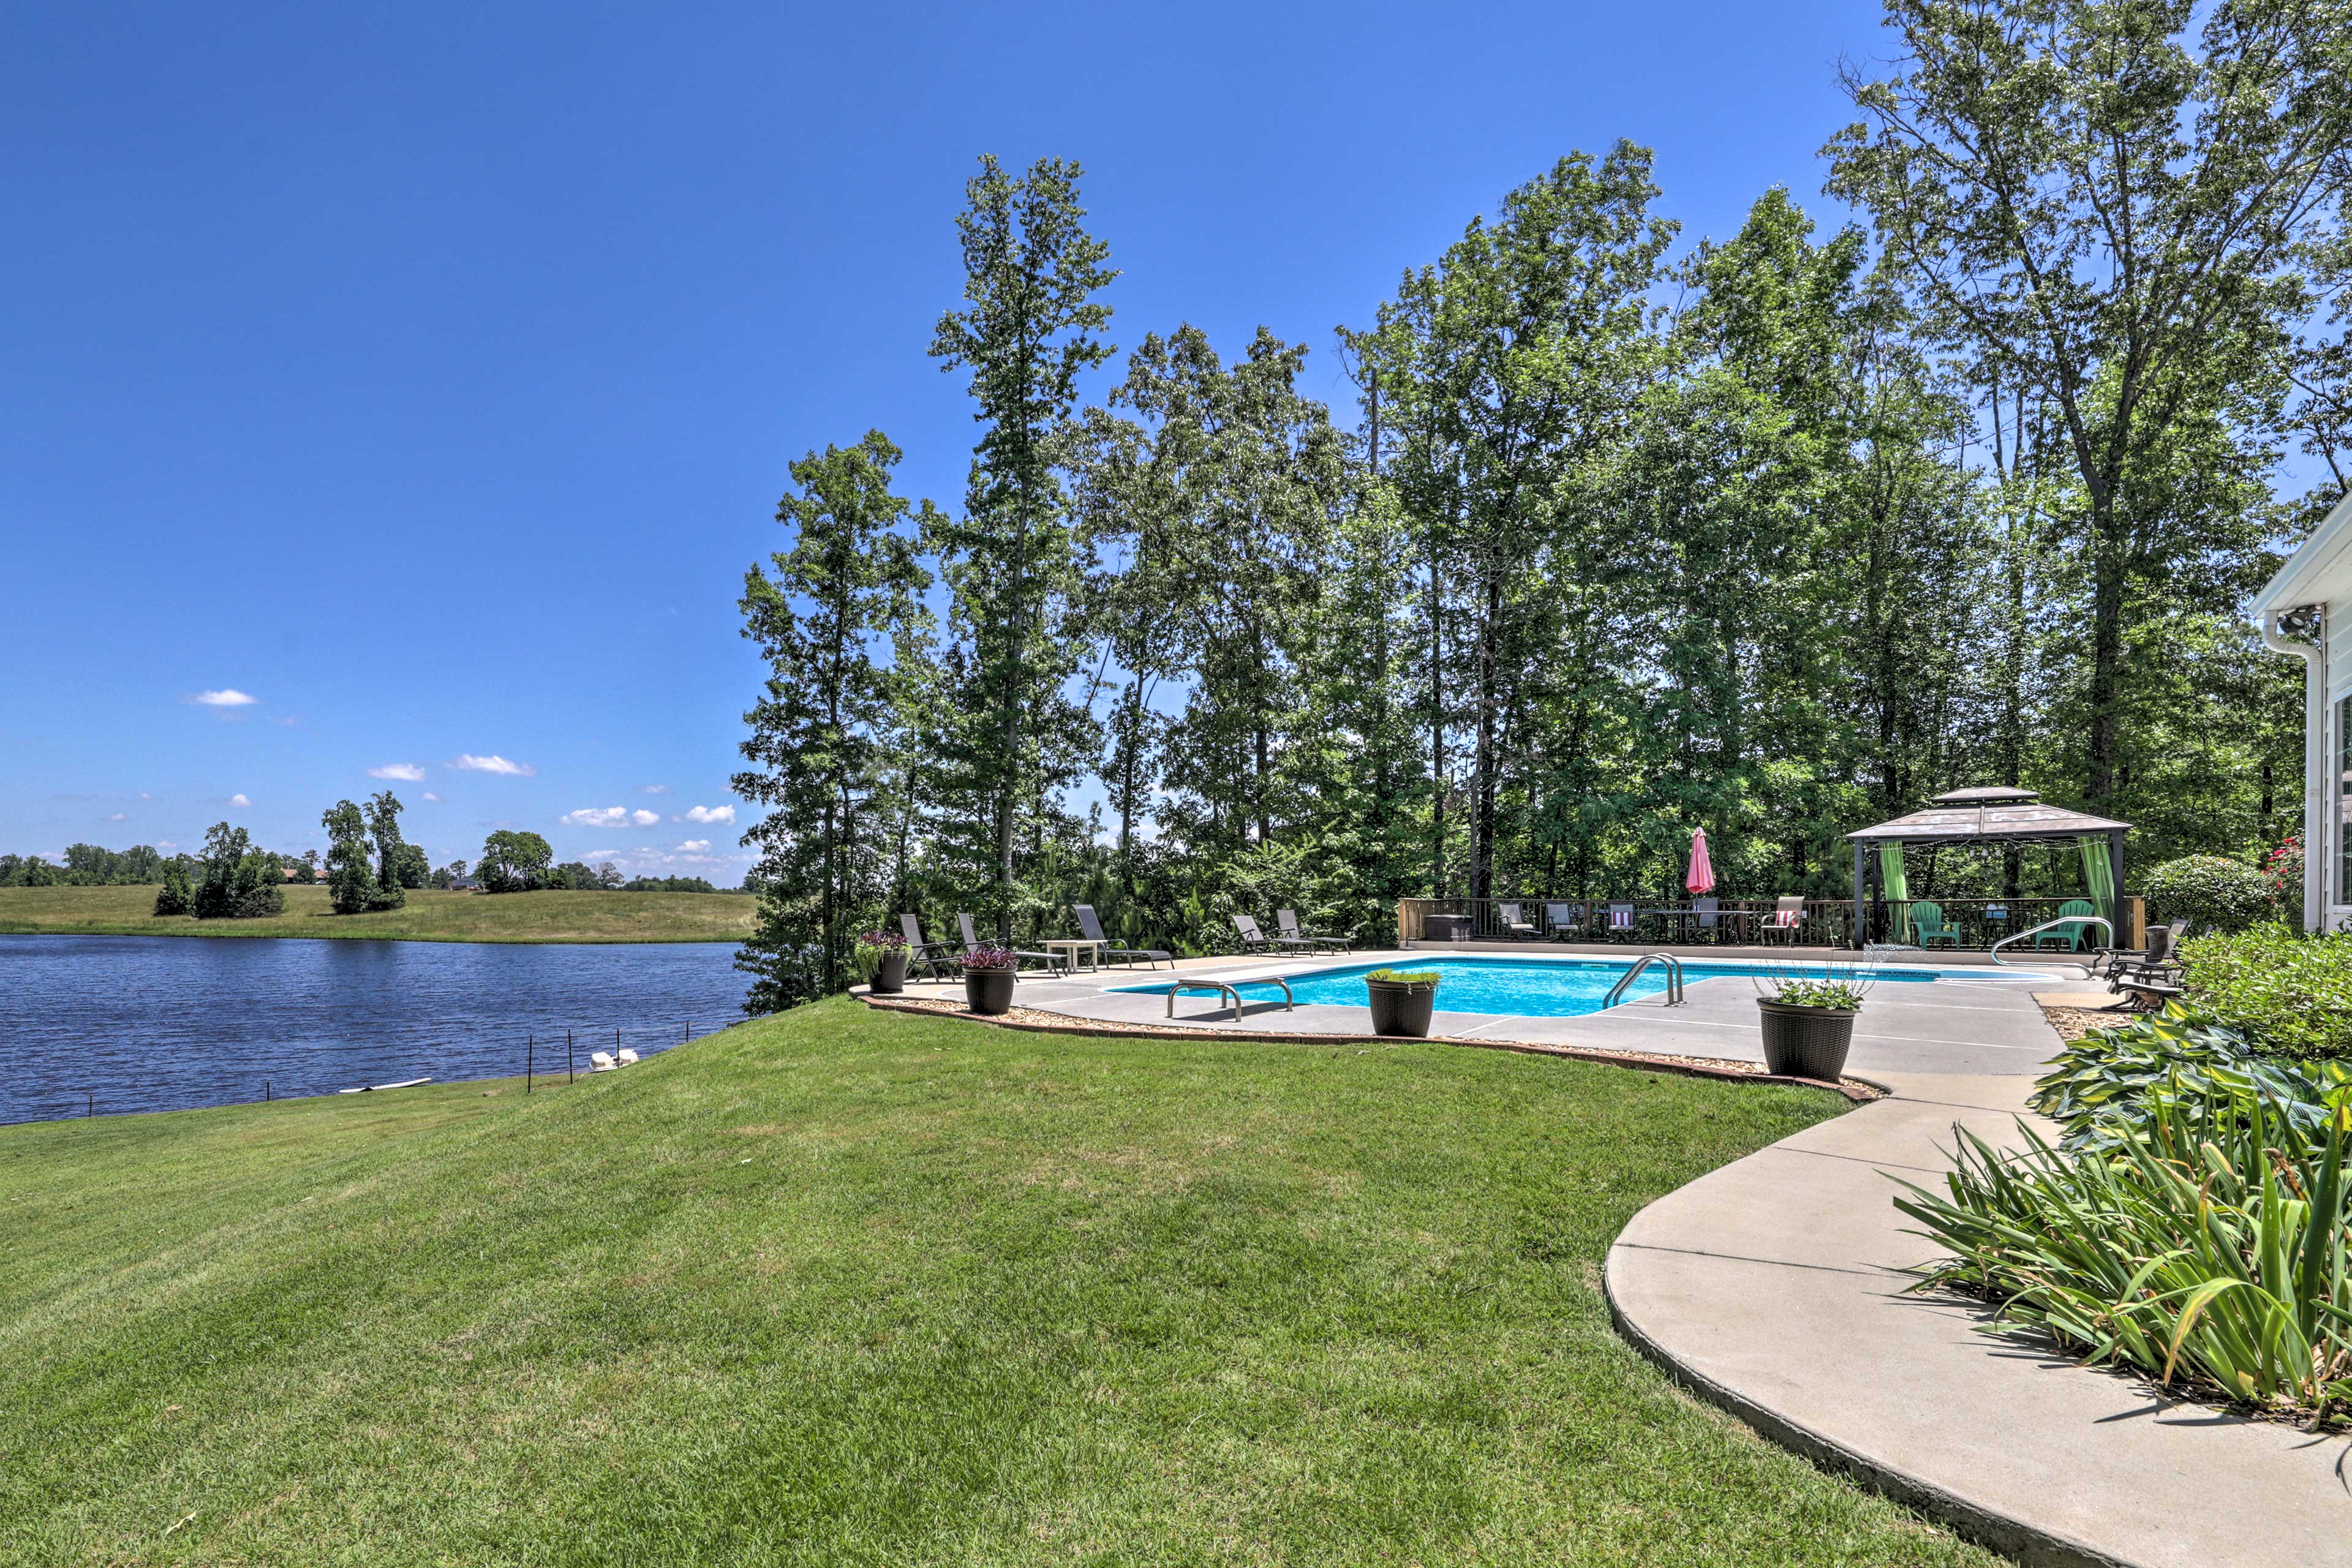 The waterfront property is nestled beside a lake stocked with fish!